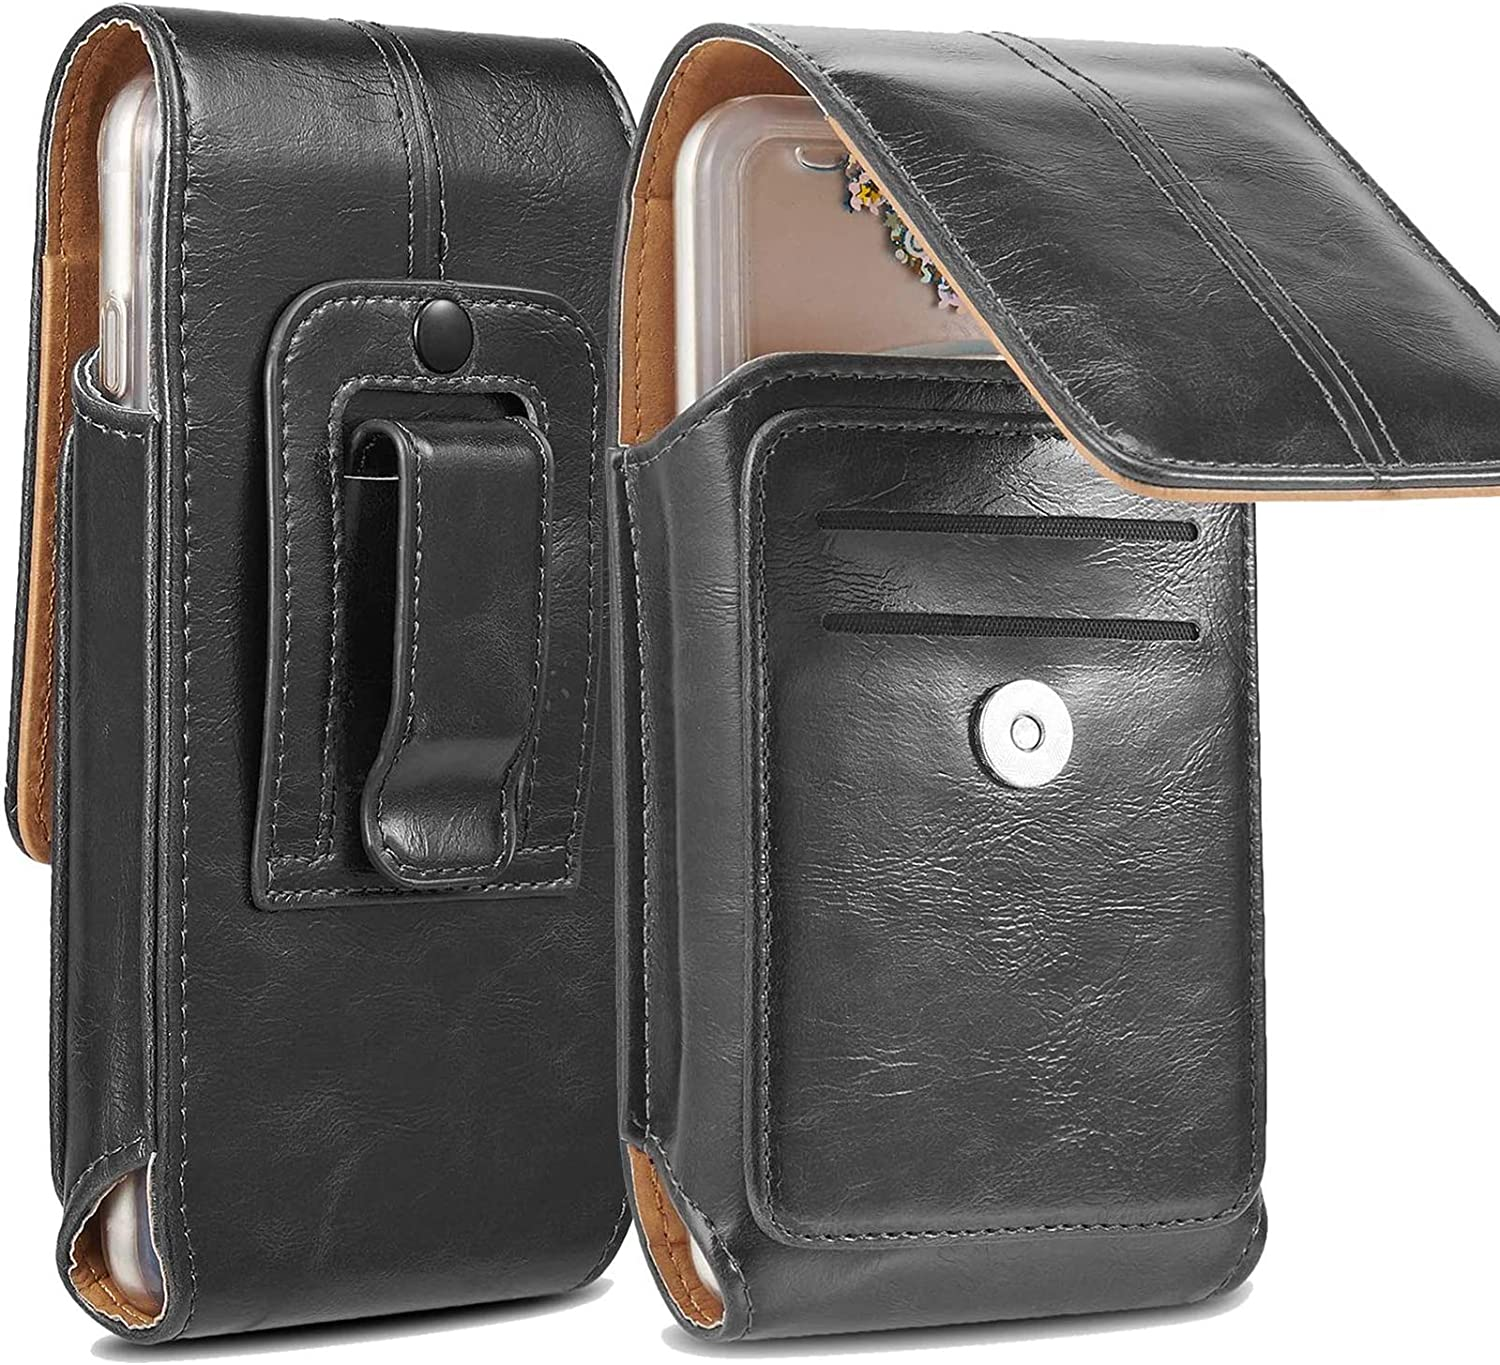 suily Leather Phone Holster, [Upgraded] Large Size Phone Belt Holster with Additional Card Slot for iPhone Xs/8 Plus/7 Plus/ 6 Plus/Galaxy S10/S9/Note8 (Black 2)